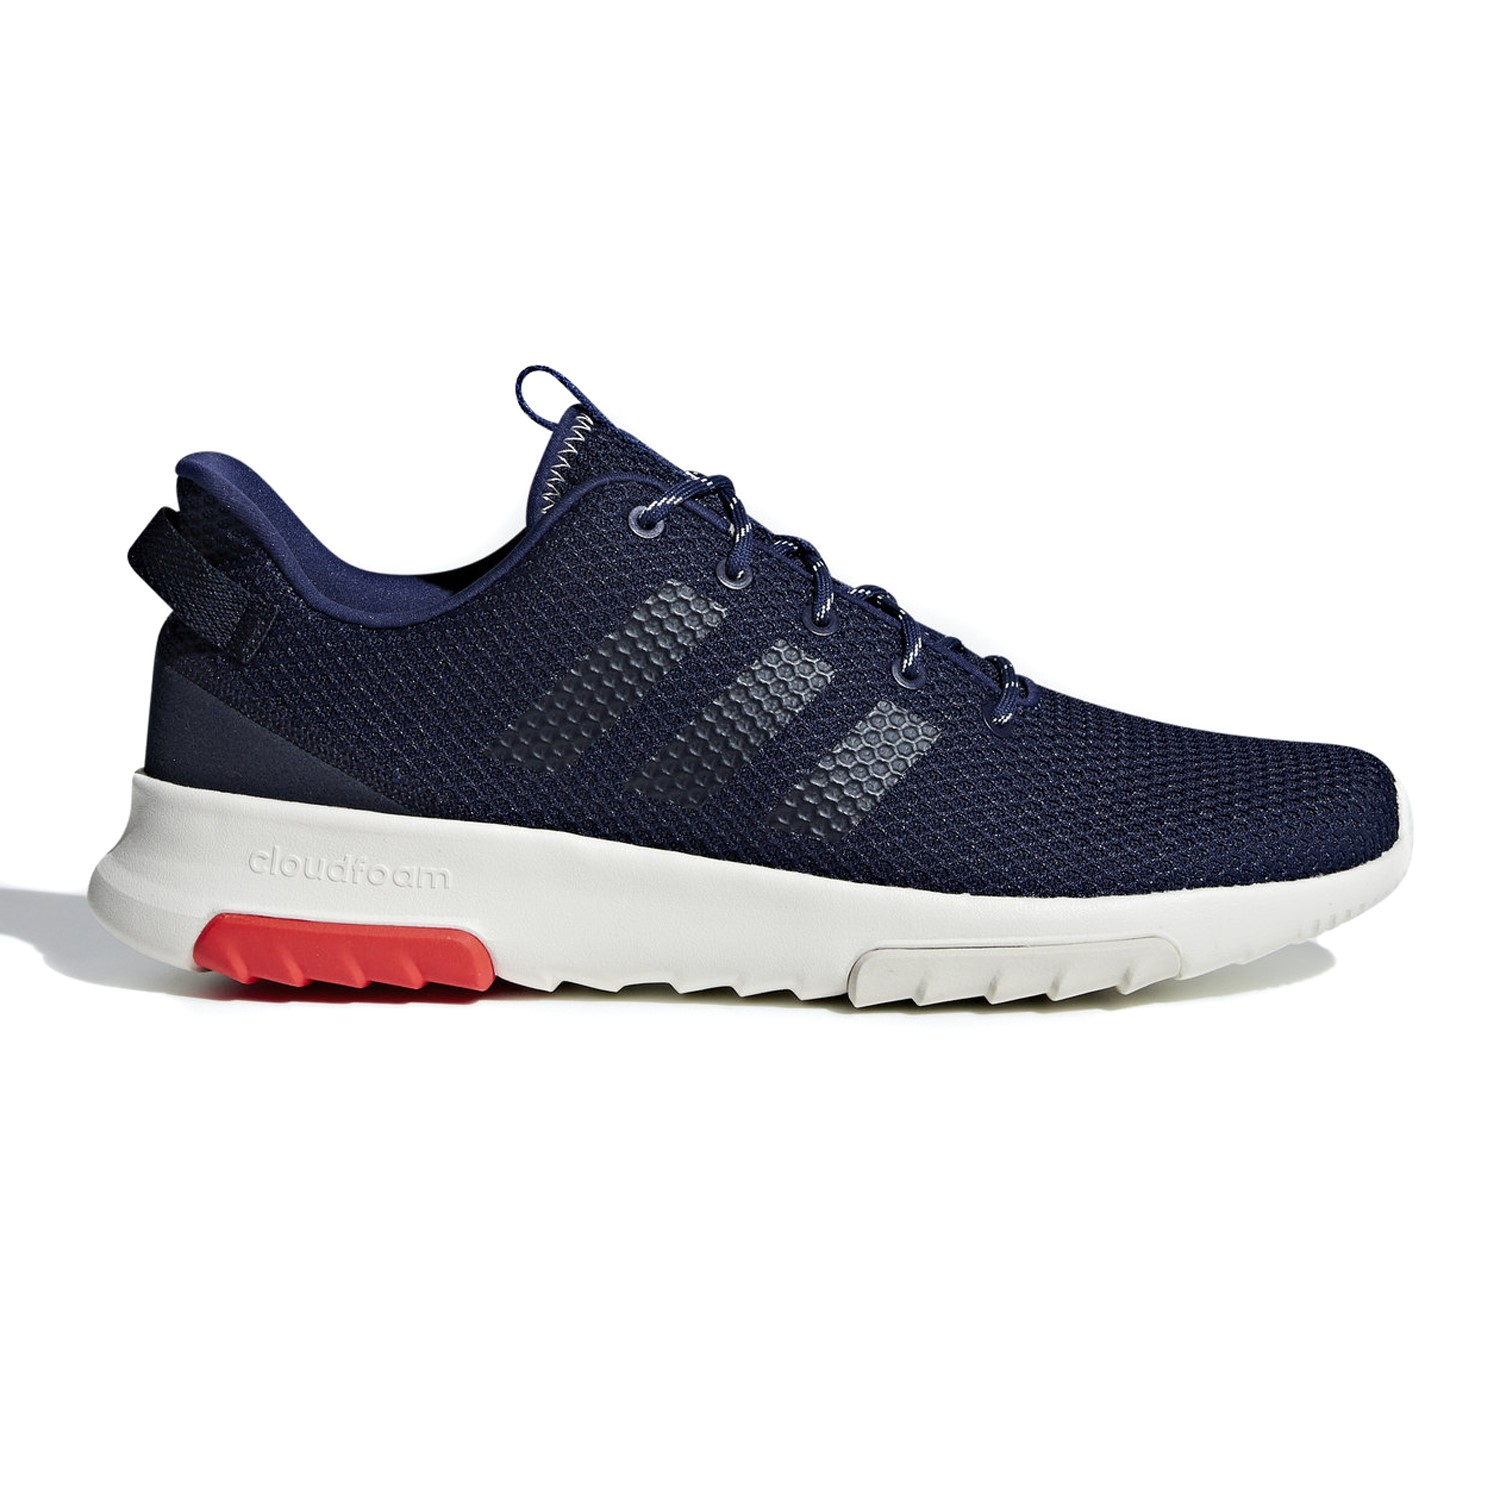 Adidas Cloudfoam Racer TR Mens Running Shoes